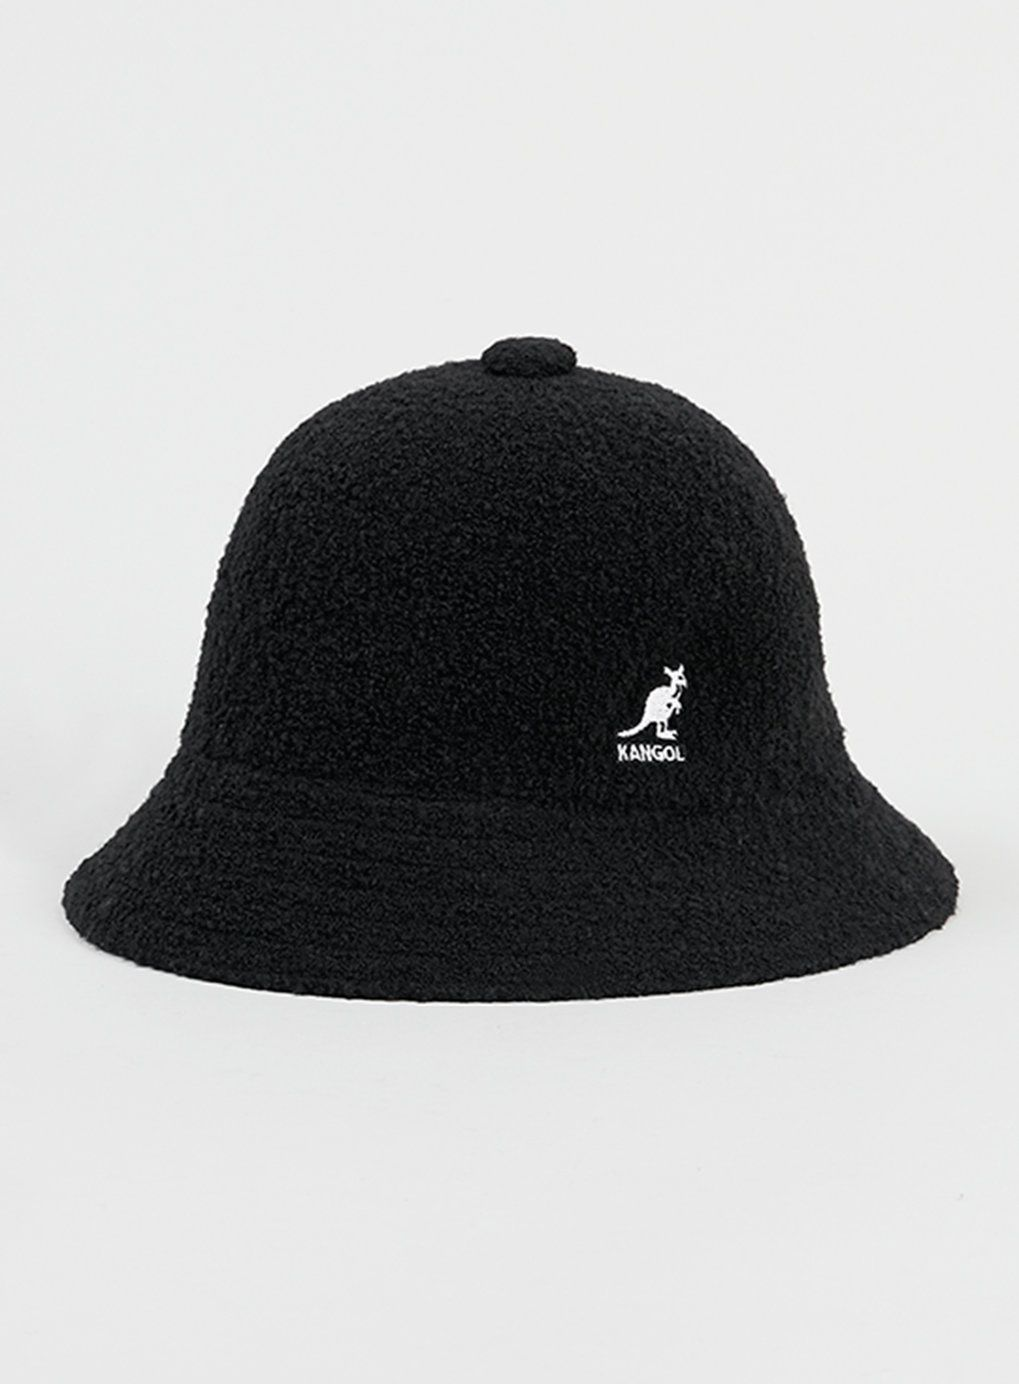 Black Kangol Bucket Hat  83768ddb9b5